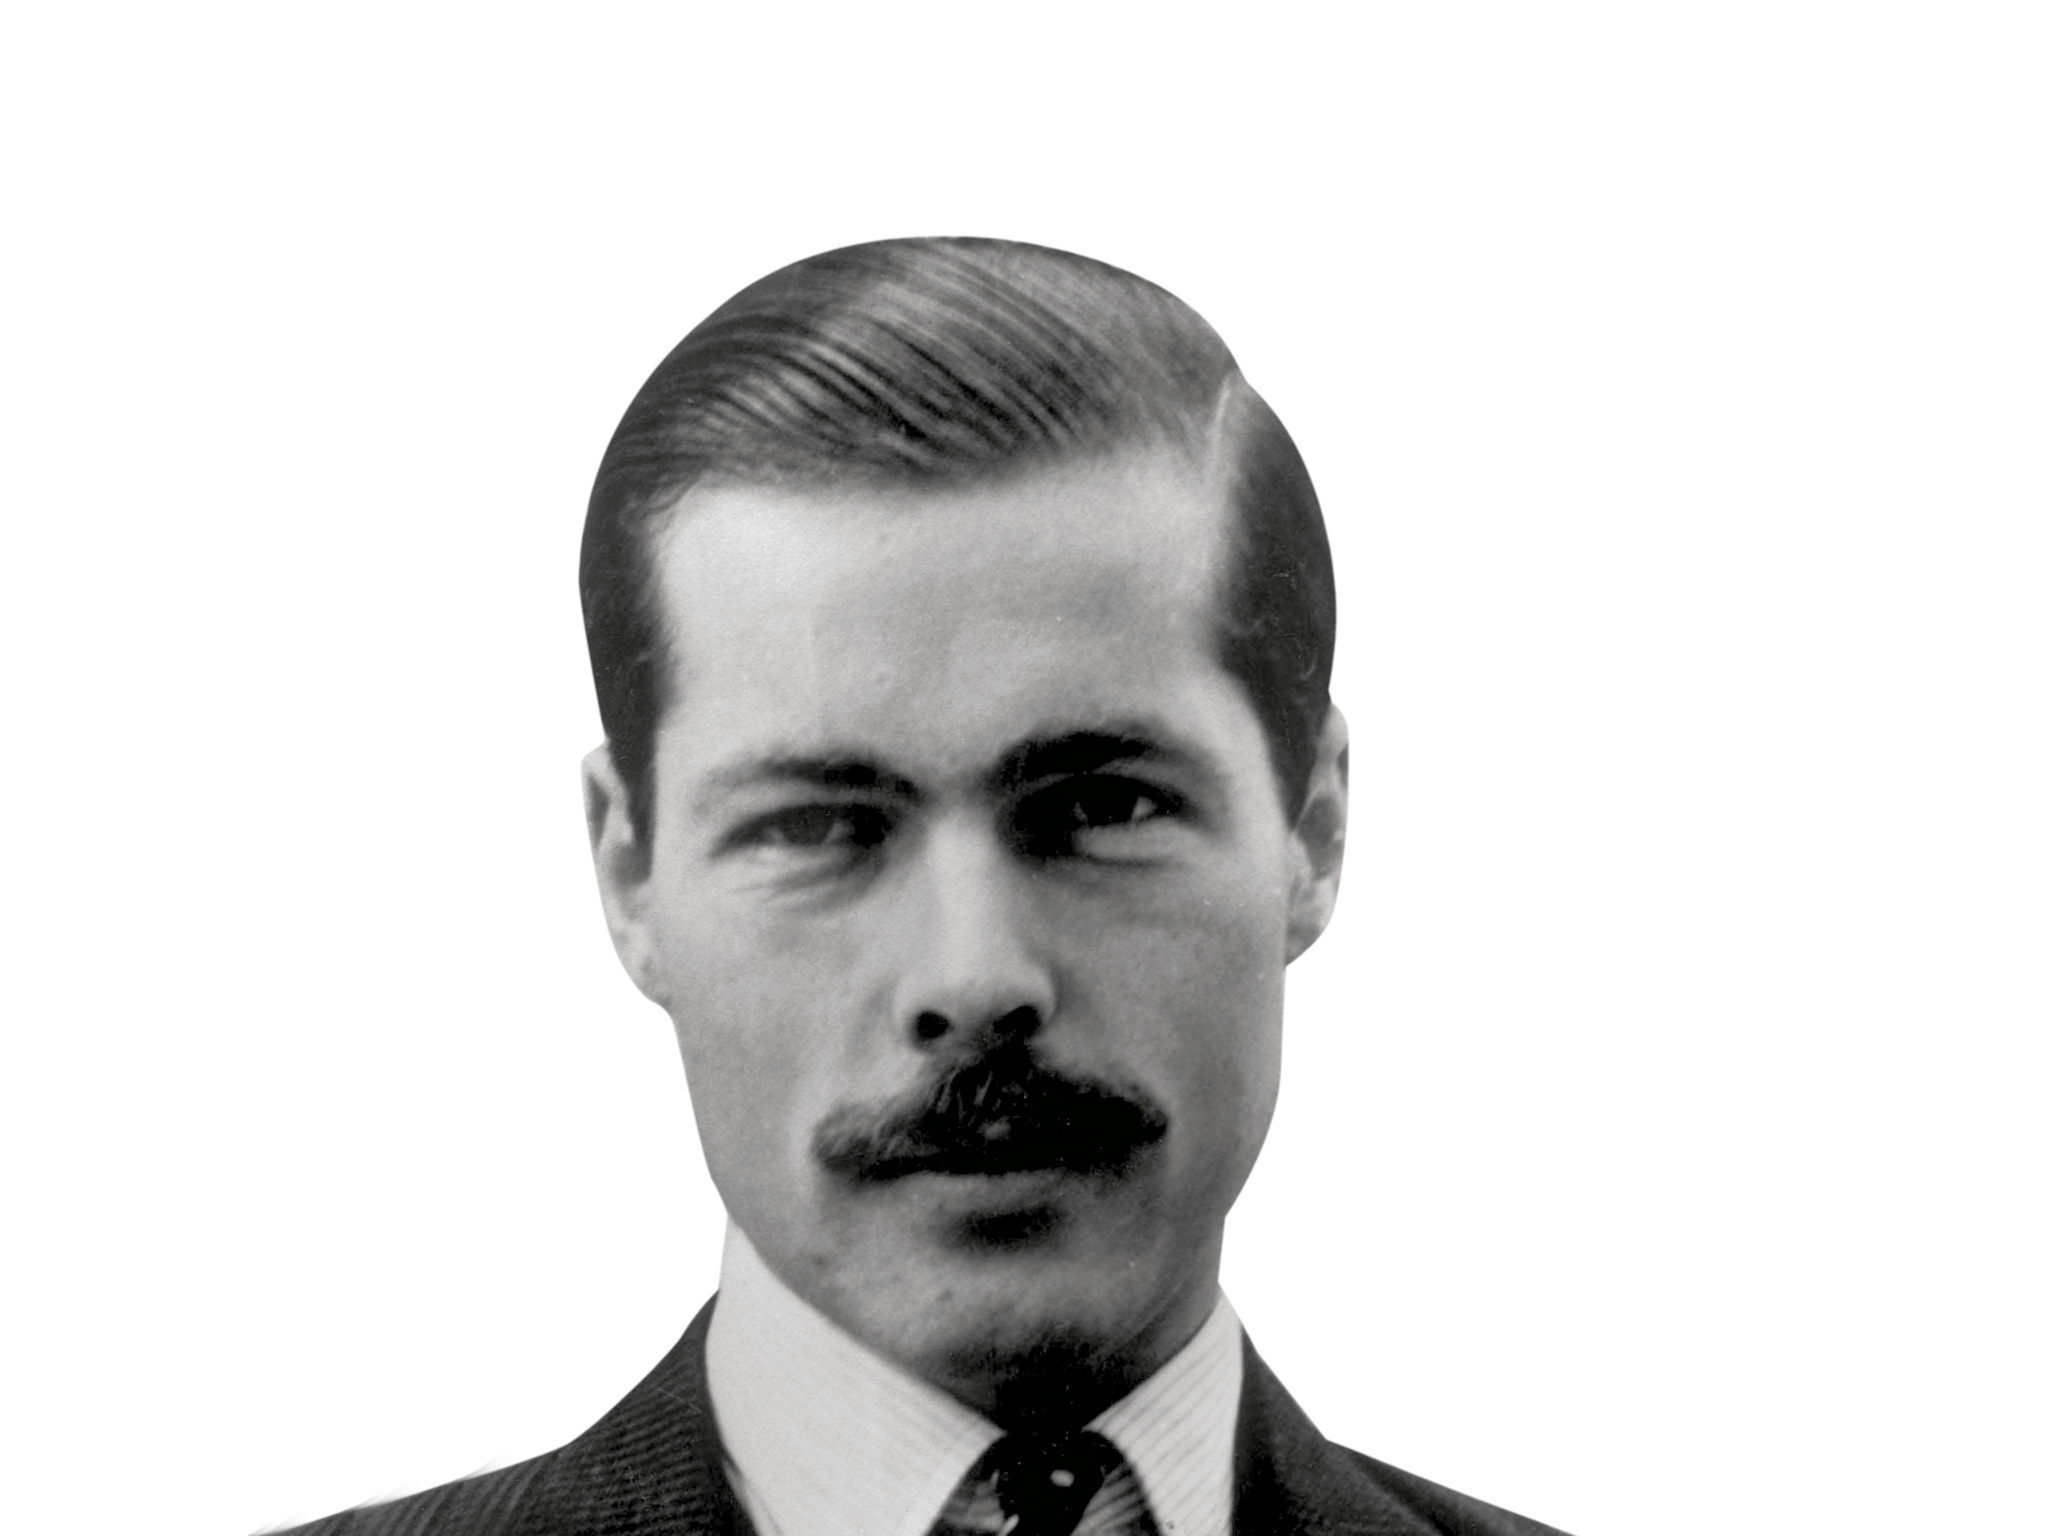 Lord Lucan pudo ser James Bond